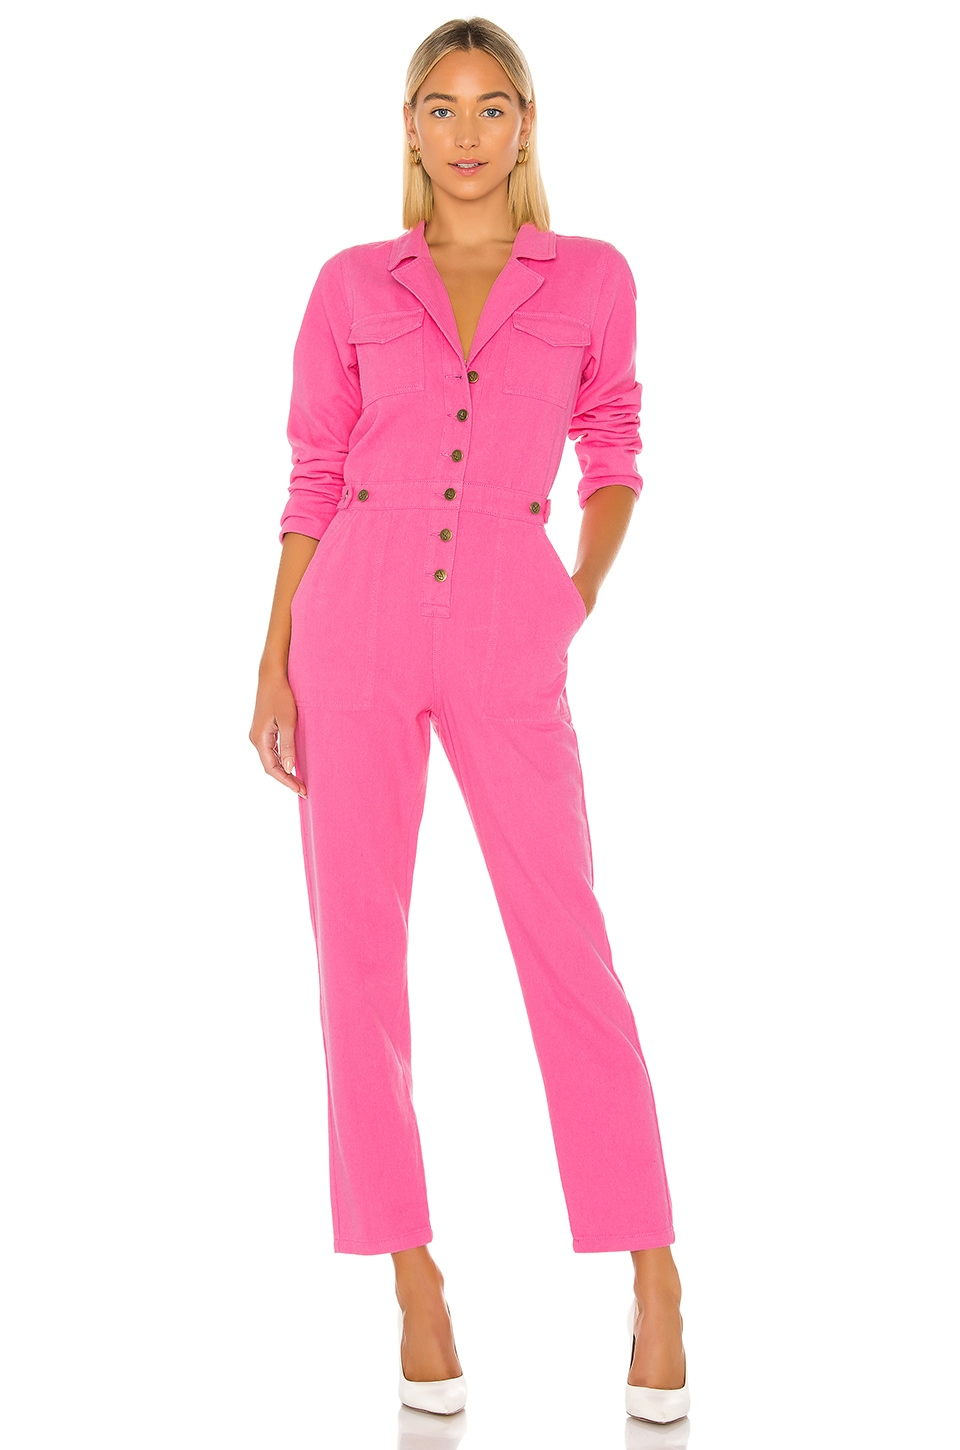 MINKPINK Kinetic Jumpsuit in Pink